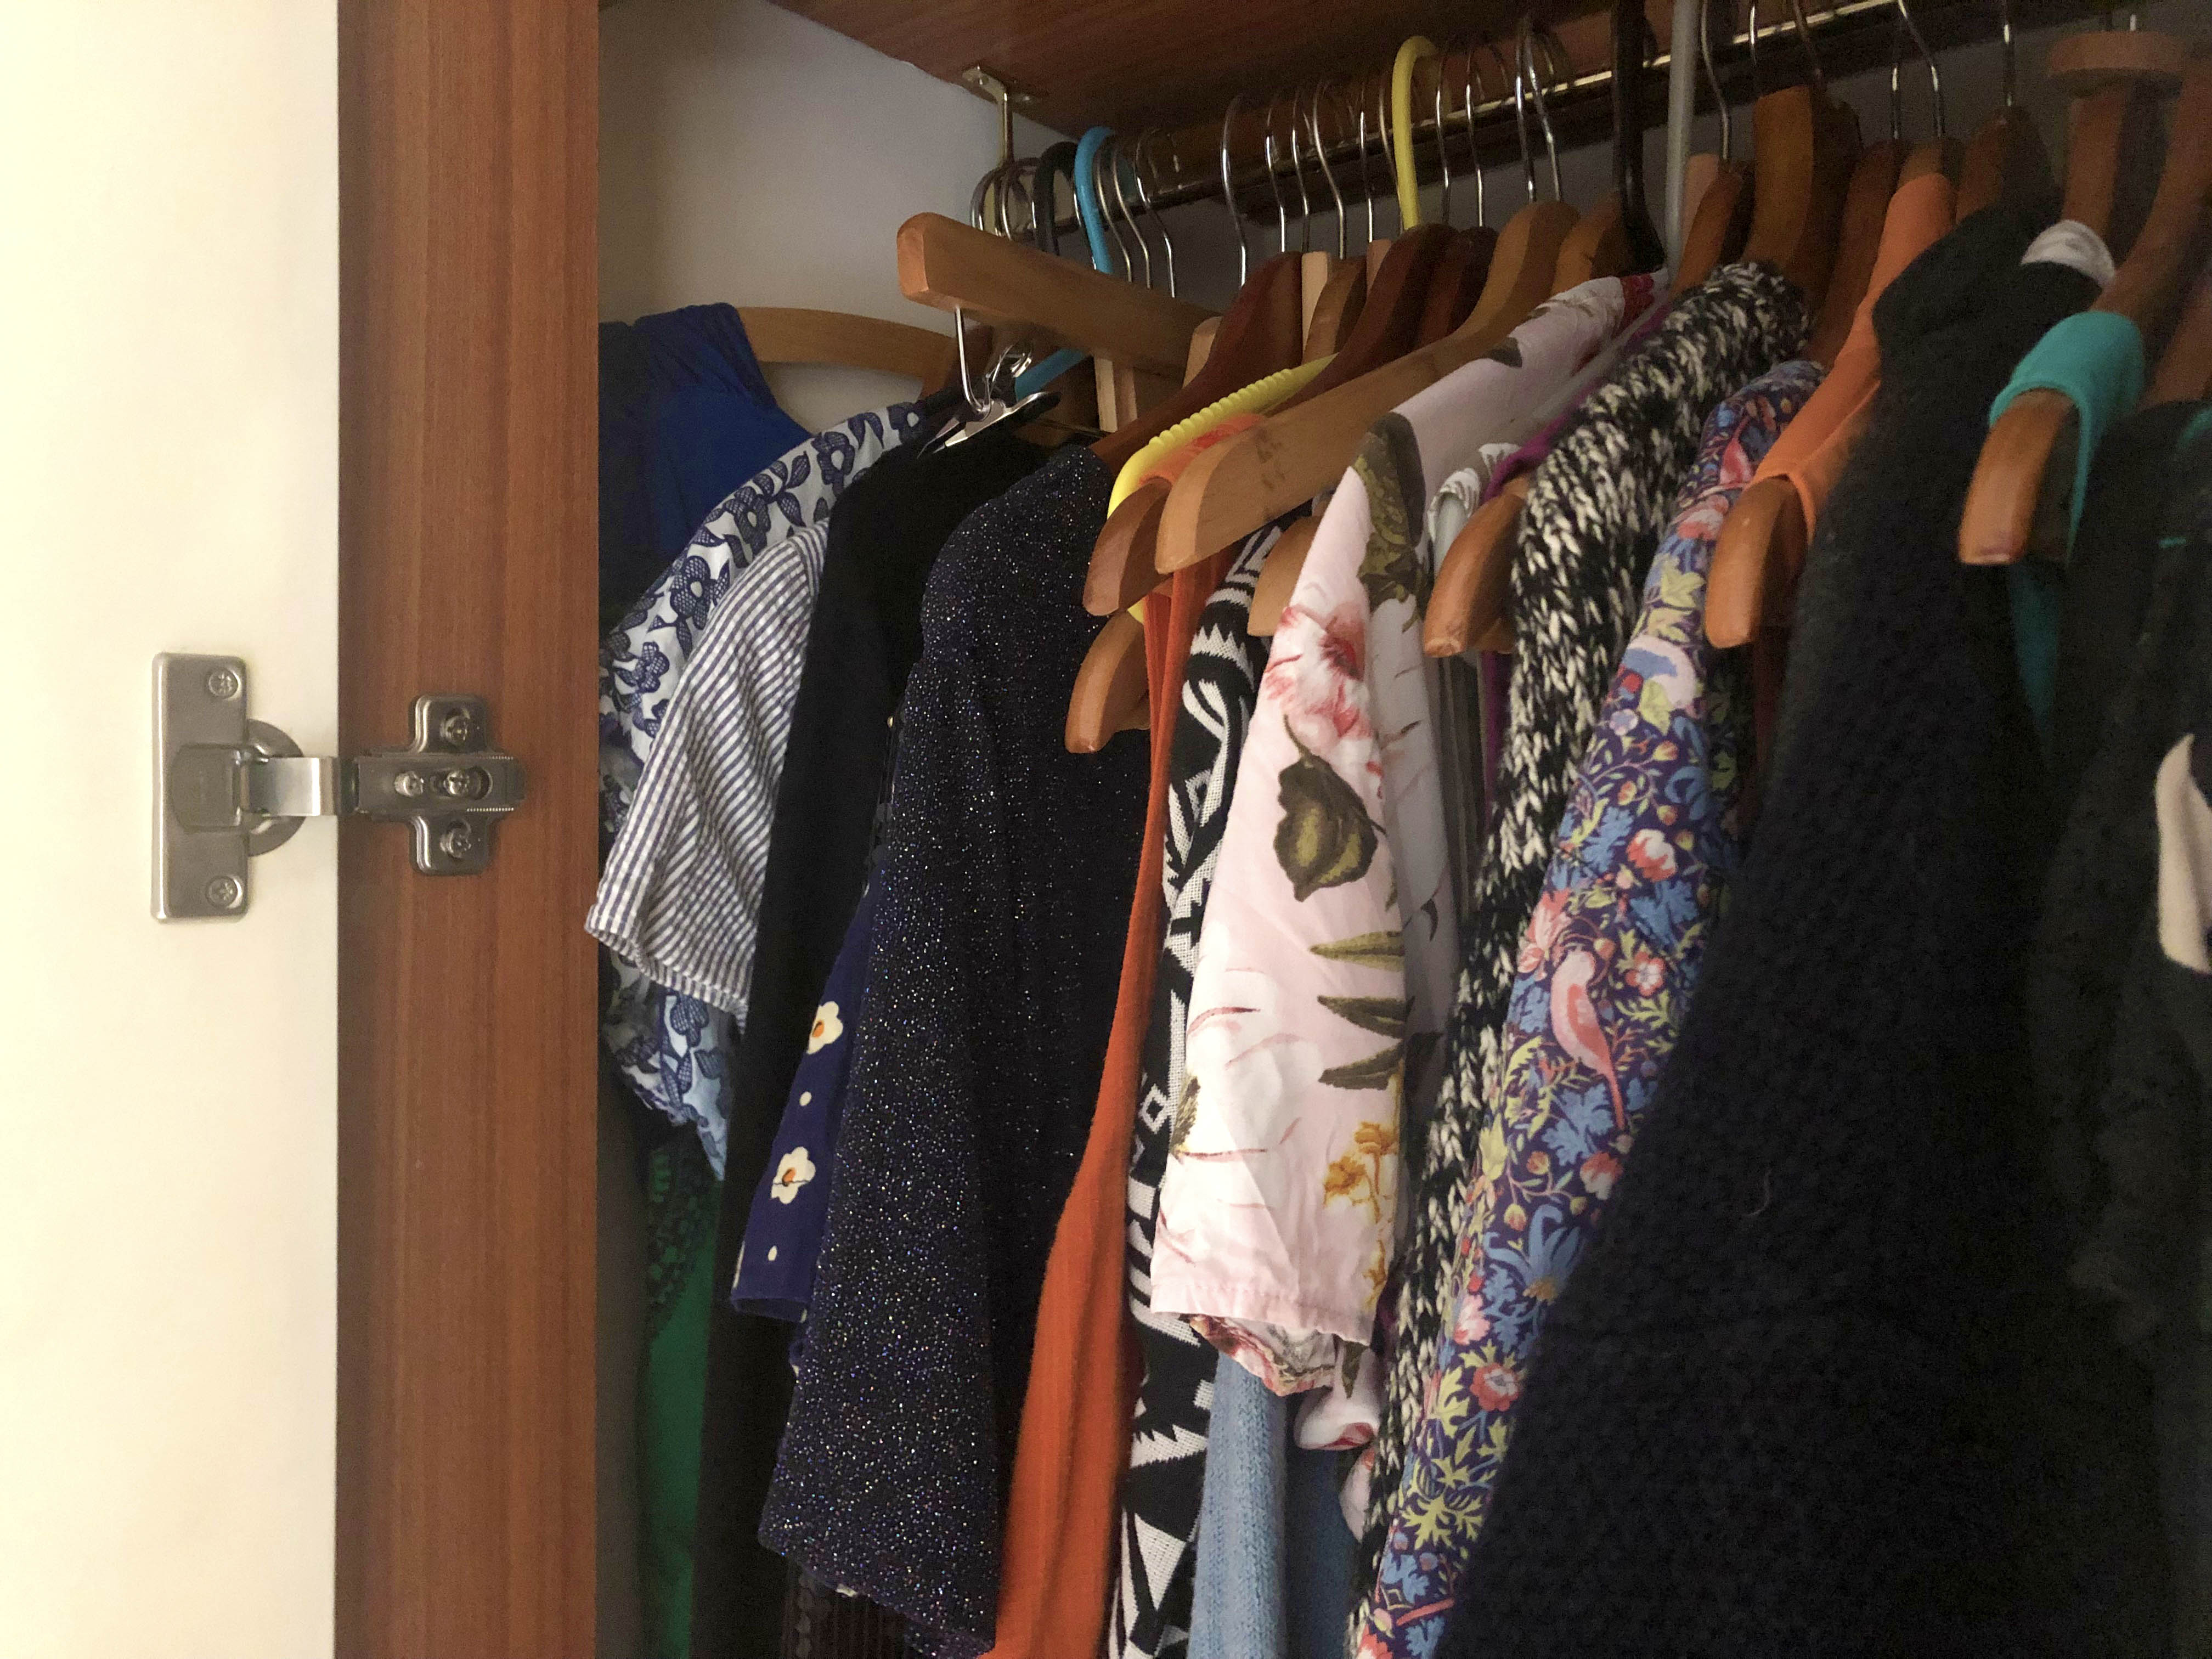 Old clothing in wardrobe used for rag rugging